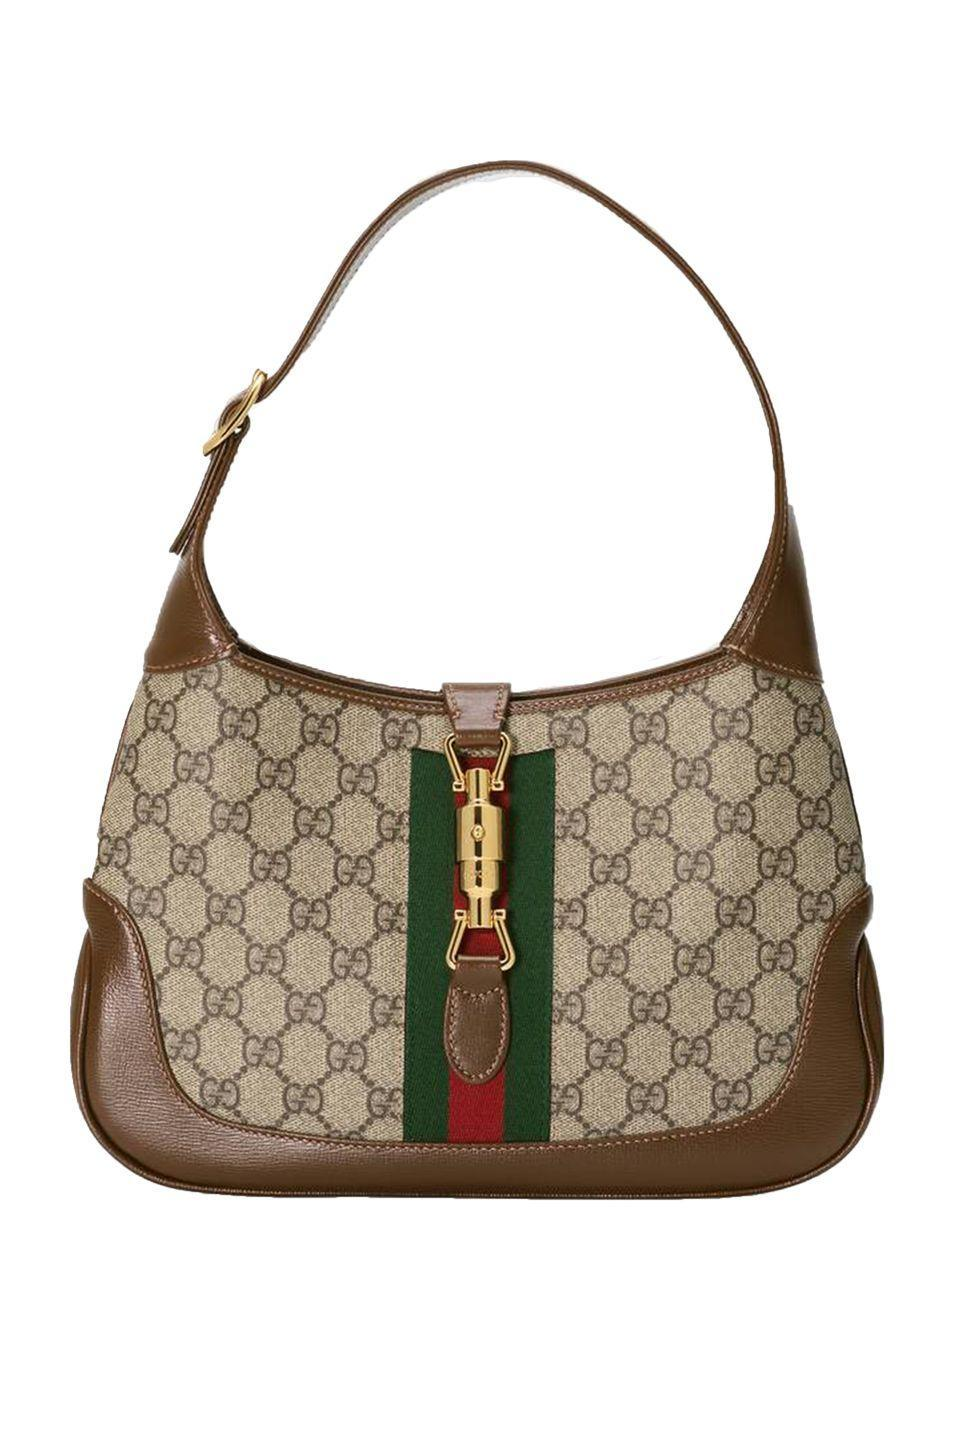 "<p>Get ready for the newest it-throwback<em>. </em>Gucci is revisiting The Jackie, which made its comeback on the Fall 2020 runway. Often seen on by Jackie Kennedy in the '60s—hence its name—the shoulder tote is our top suggestion for practical types. From a wearable shape that fits comfortable under your arm to its timeless GG Supreme print, The Jackie is well-deserving of a renaissance. <br></p><p> <em>Gucci, $1,750; gucci.com</em></p><p><a class=""link rapid-noclick-resp"" href=""https://go.redirectingat.com?id=74968X1596630&url=https%3A%2F%2Fwww.gucci.com%2Fus%2Fen%2Fst%2Fcapsule%2Fjackie-1961&sref=https%3A%2F%2Fwww.elle.com%2Ffashion%2Fshopping%2Fg33416567%2Fdesigner-it-bags-pre-fall-2021%2F"" rel=""nofollow noopener"" target=""_blank"" data-ylk=""slk:SHOP NOW"">SHOP NOW</a></p>"